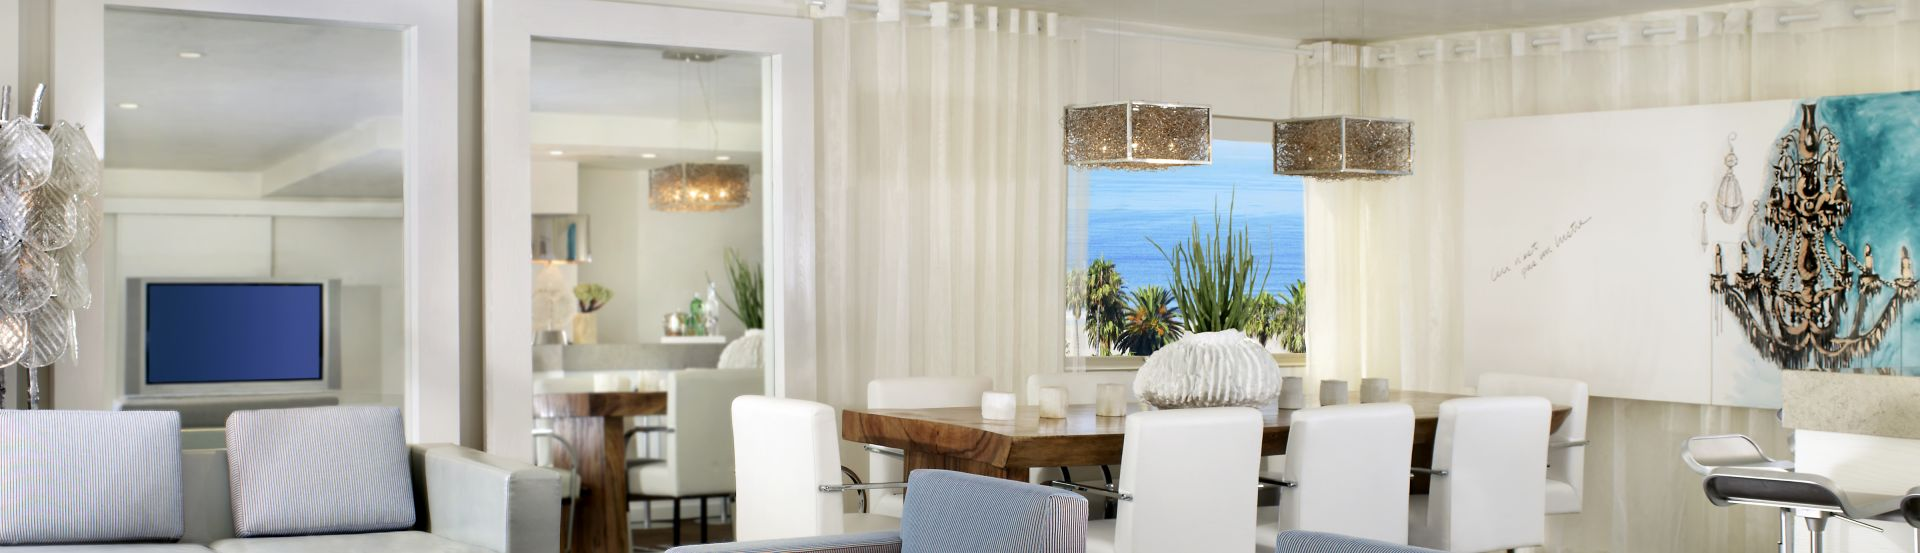 PRESIDENTIAL SUITE A REGAL CHOICE in SANTA MONICA SUITES